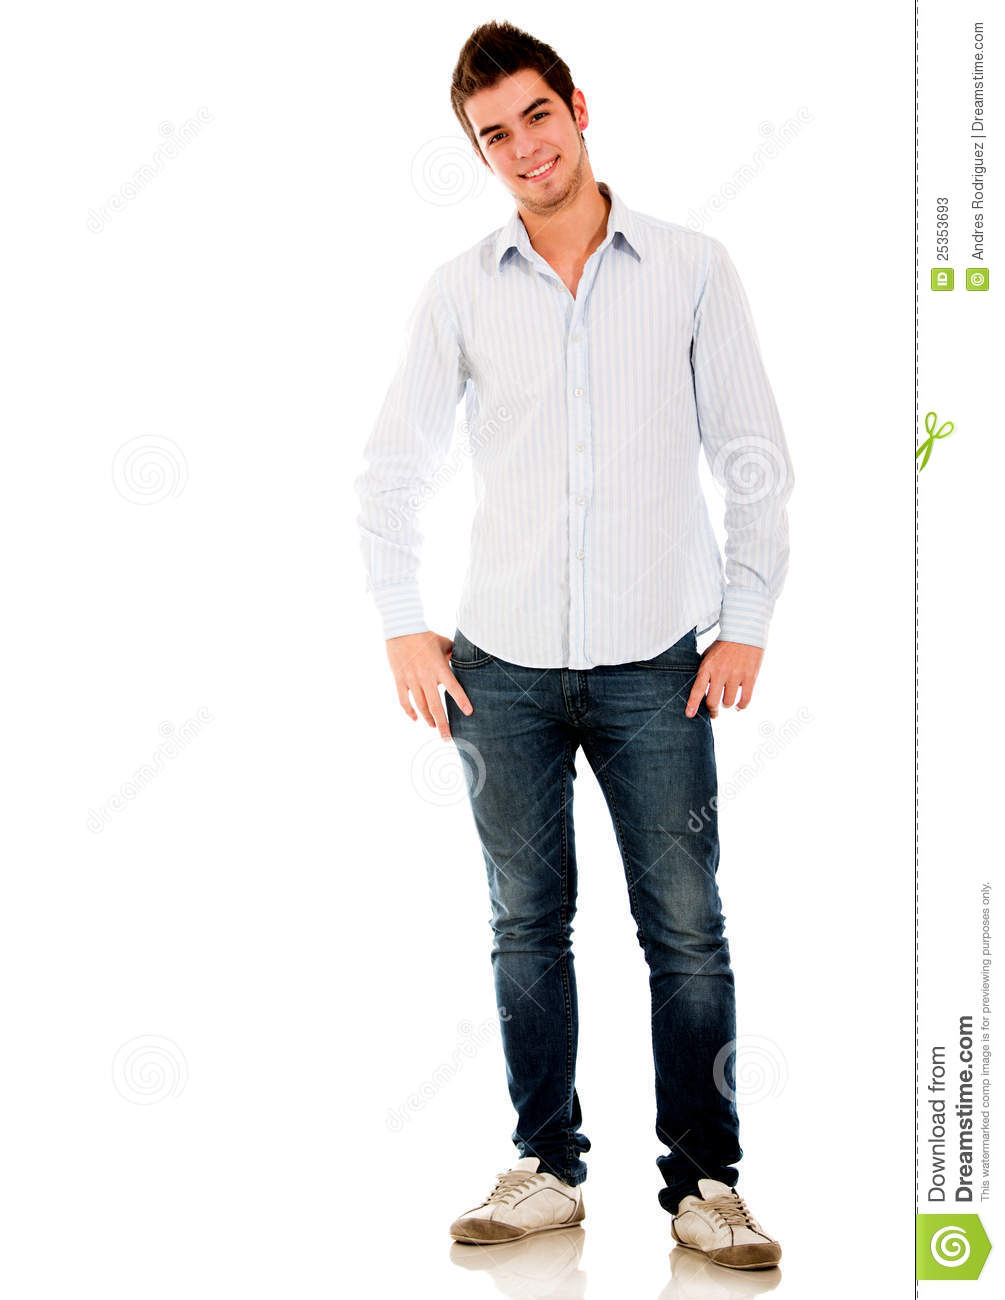 Casual young man standing isolated over a white background.